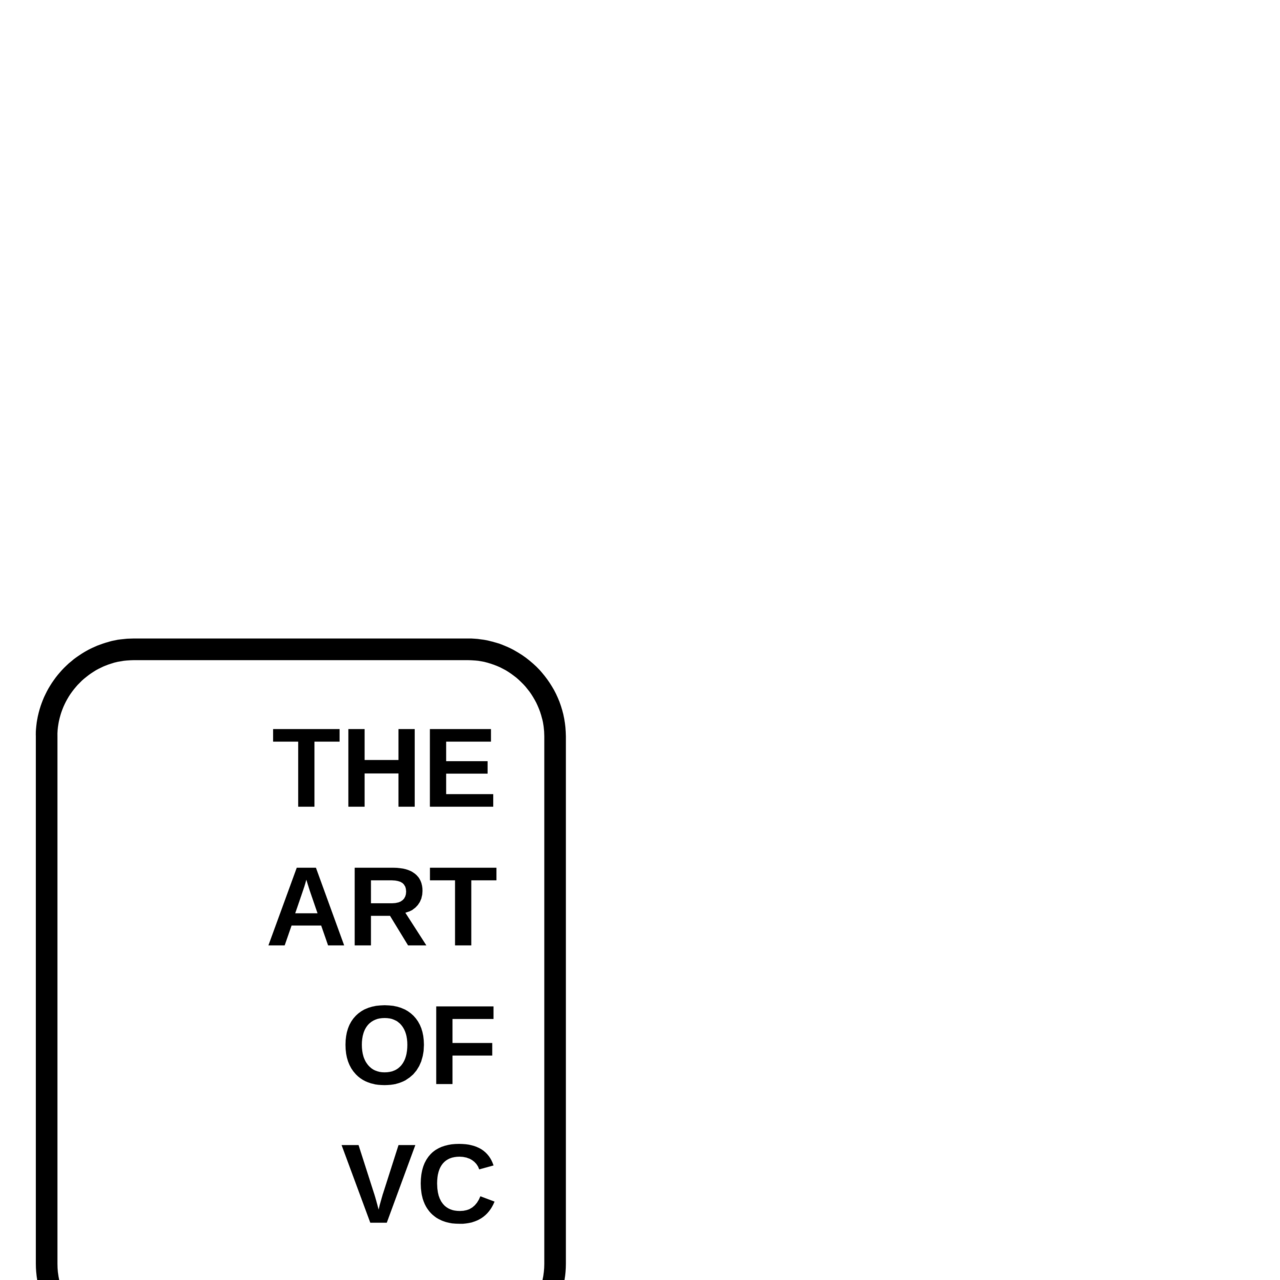 The Art of VC